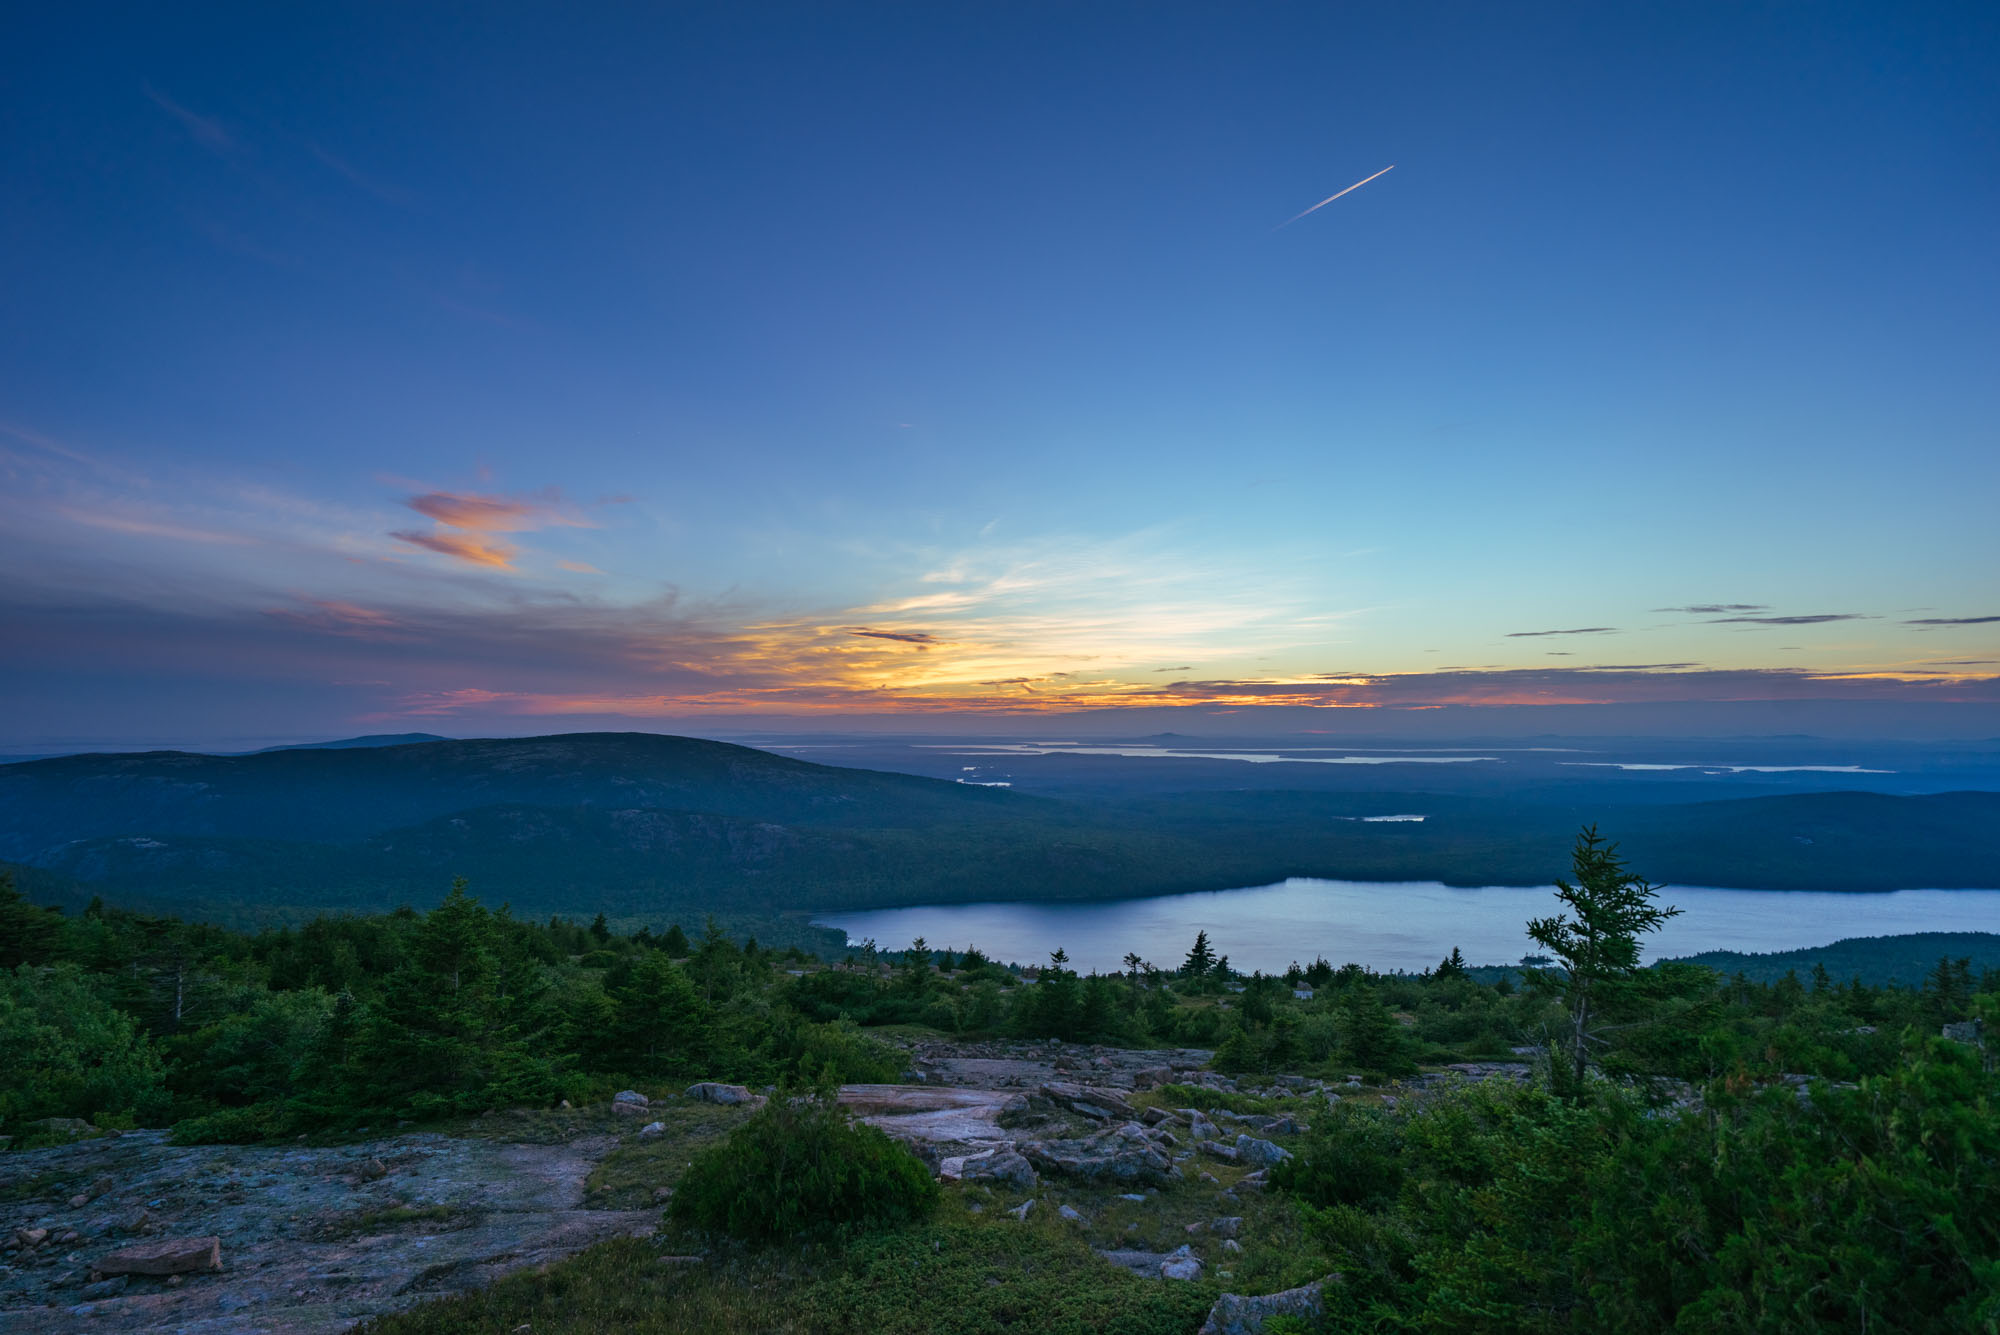 Sunset over Acadia NP from Cadillac Mountain